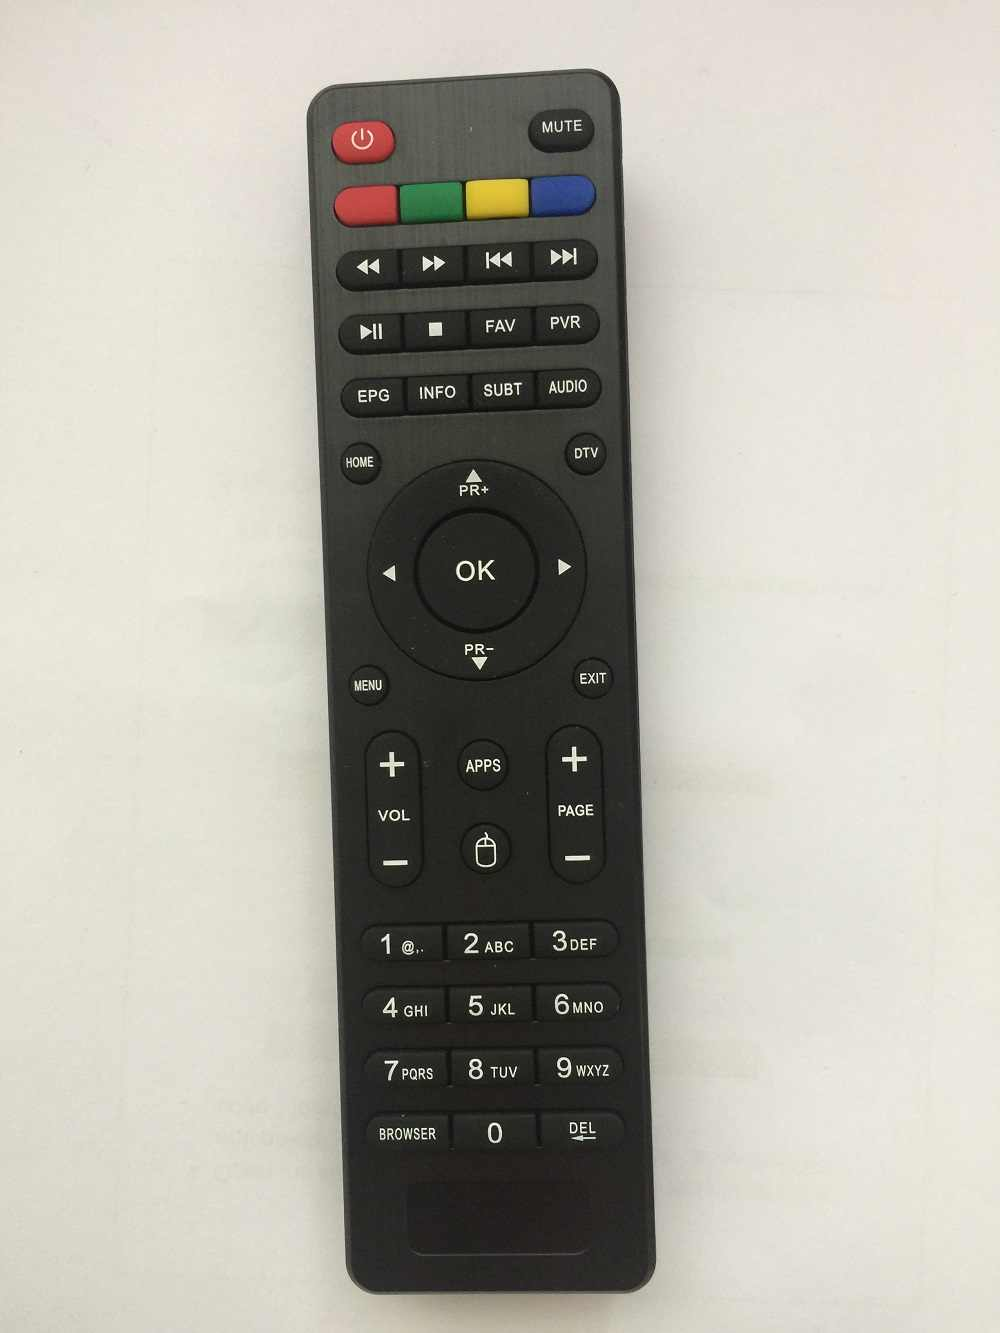 IR Remote Control Replacement Remote Control for KI S2 KI T2 KI PLUS S2 T2 KII PRO KIII PRO KI PRO S2 T2 MECOOL TV BOXES KM9